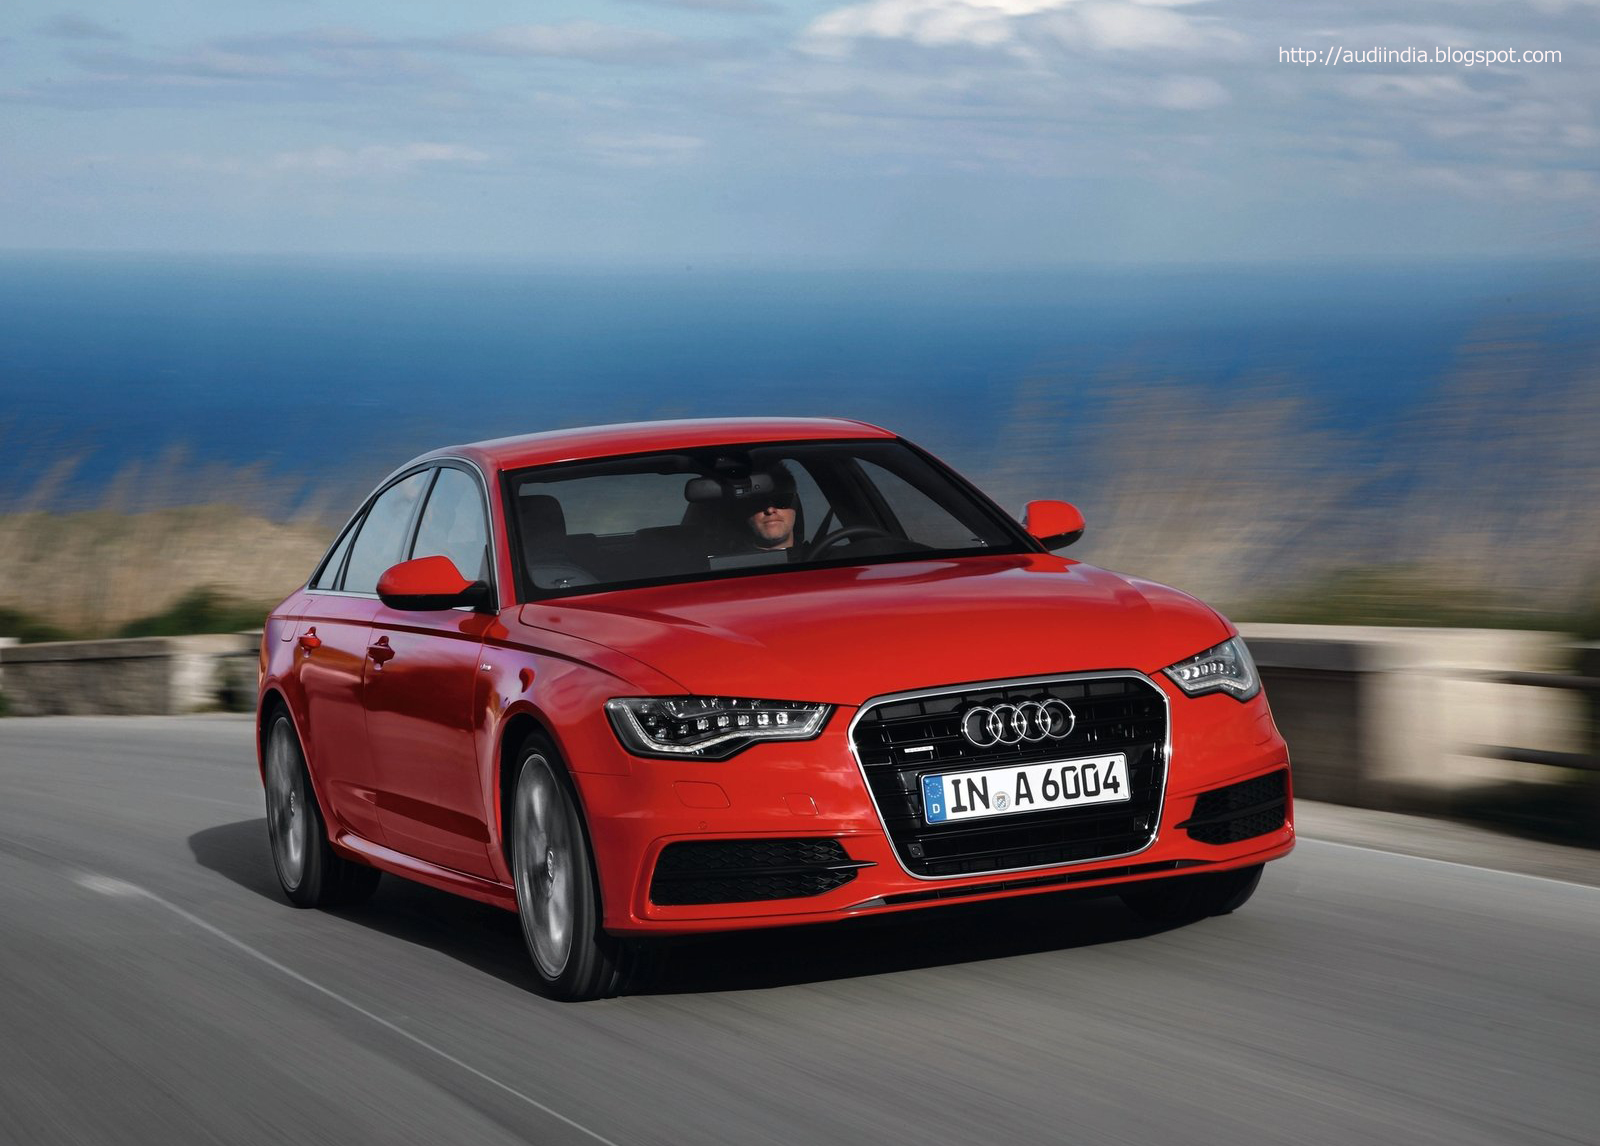 audi a6 3 0 tfsi technical specifications technical data the world of audi. Black Bedroom Furniture Sets. Home Design Ideas